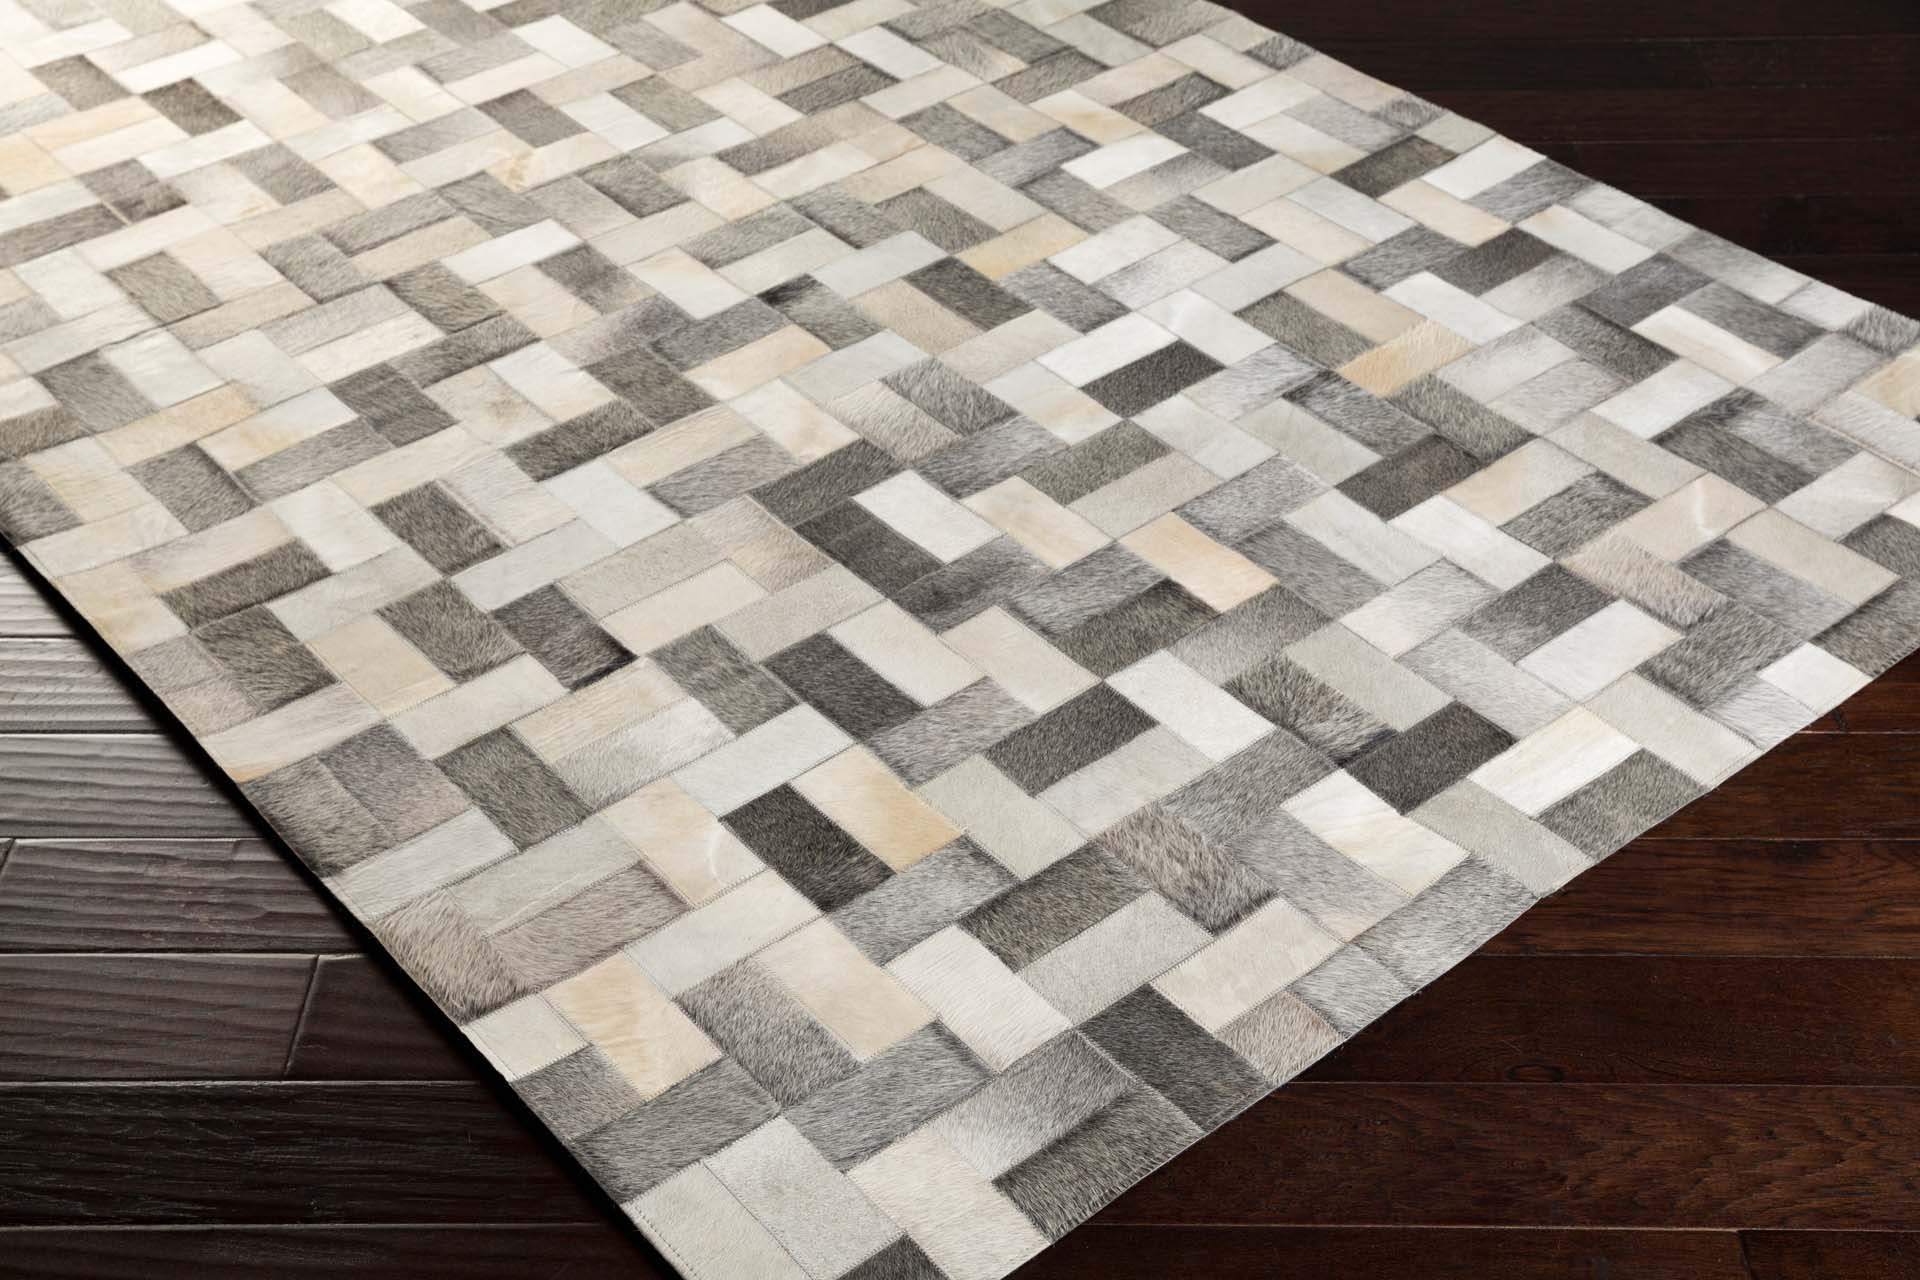 Handcrafted Surya Outback rug featuring Hair on Hide from India in gray, ivory and camel interwoven pattern.